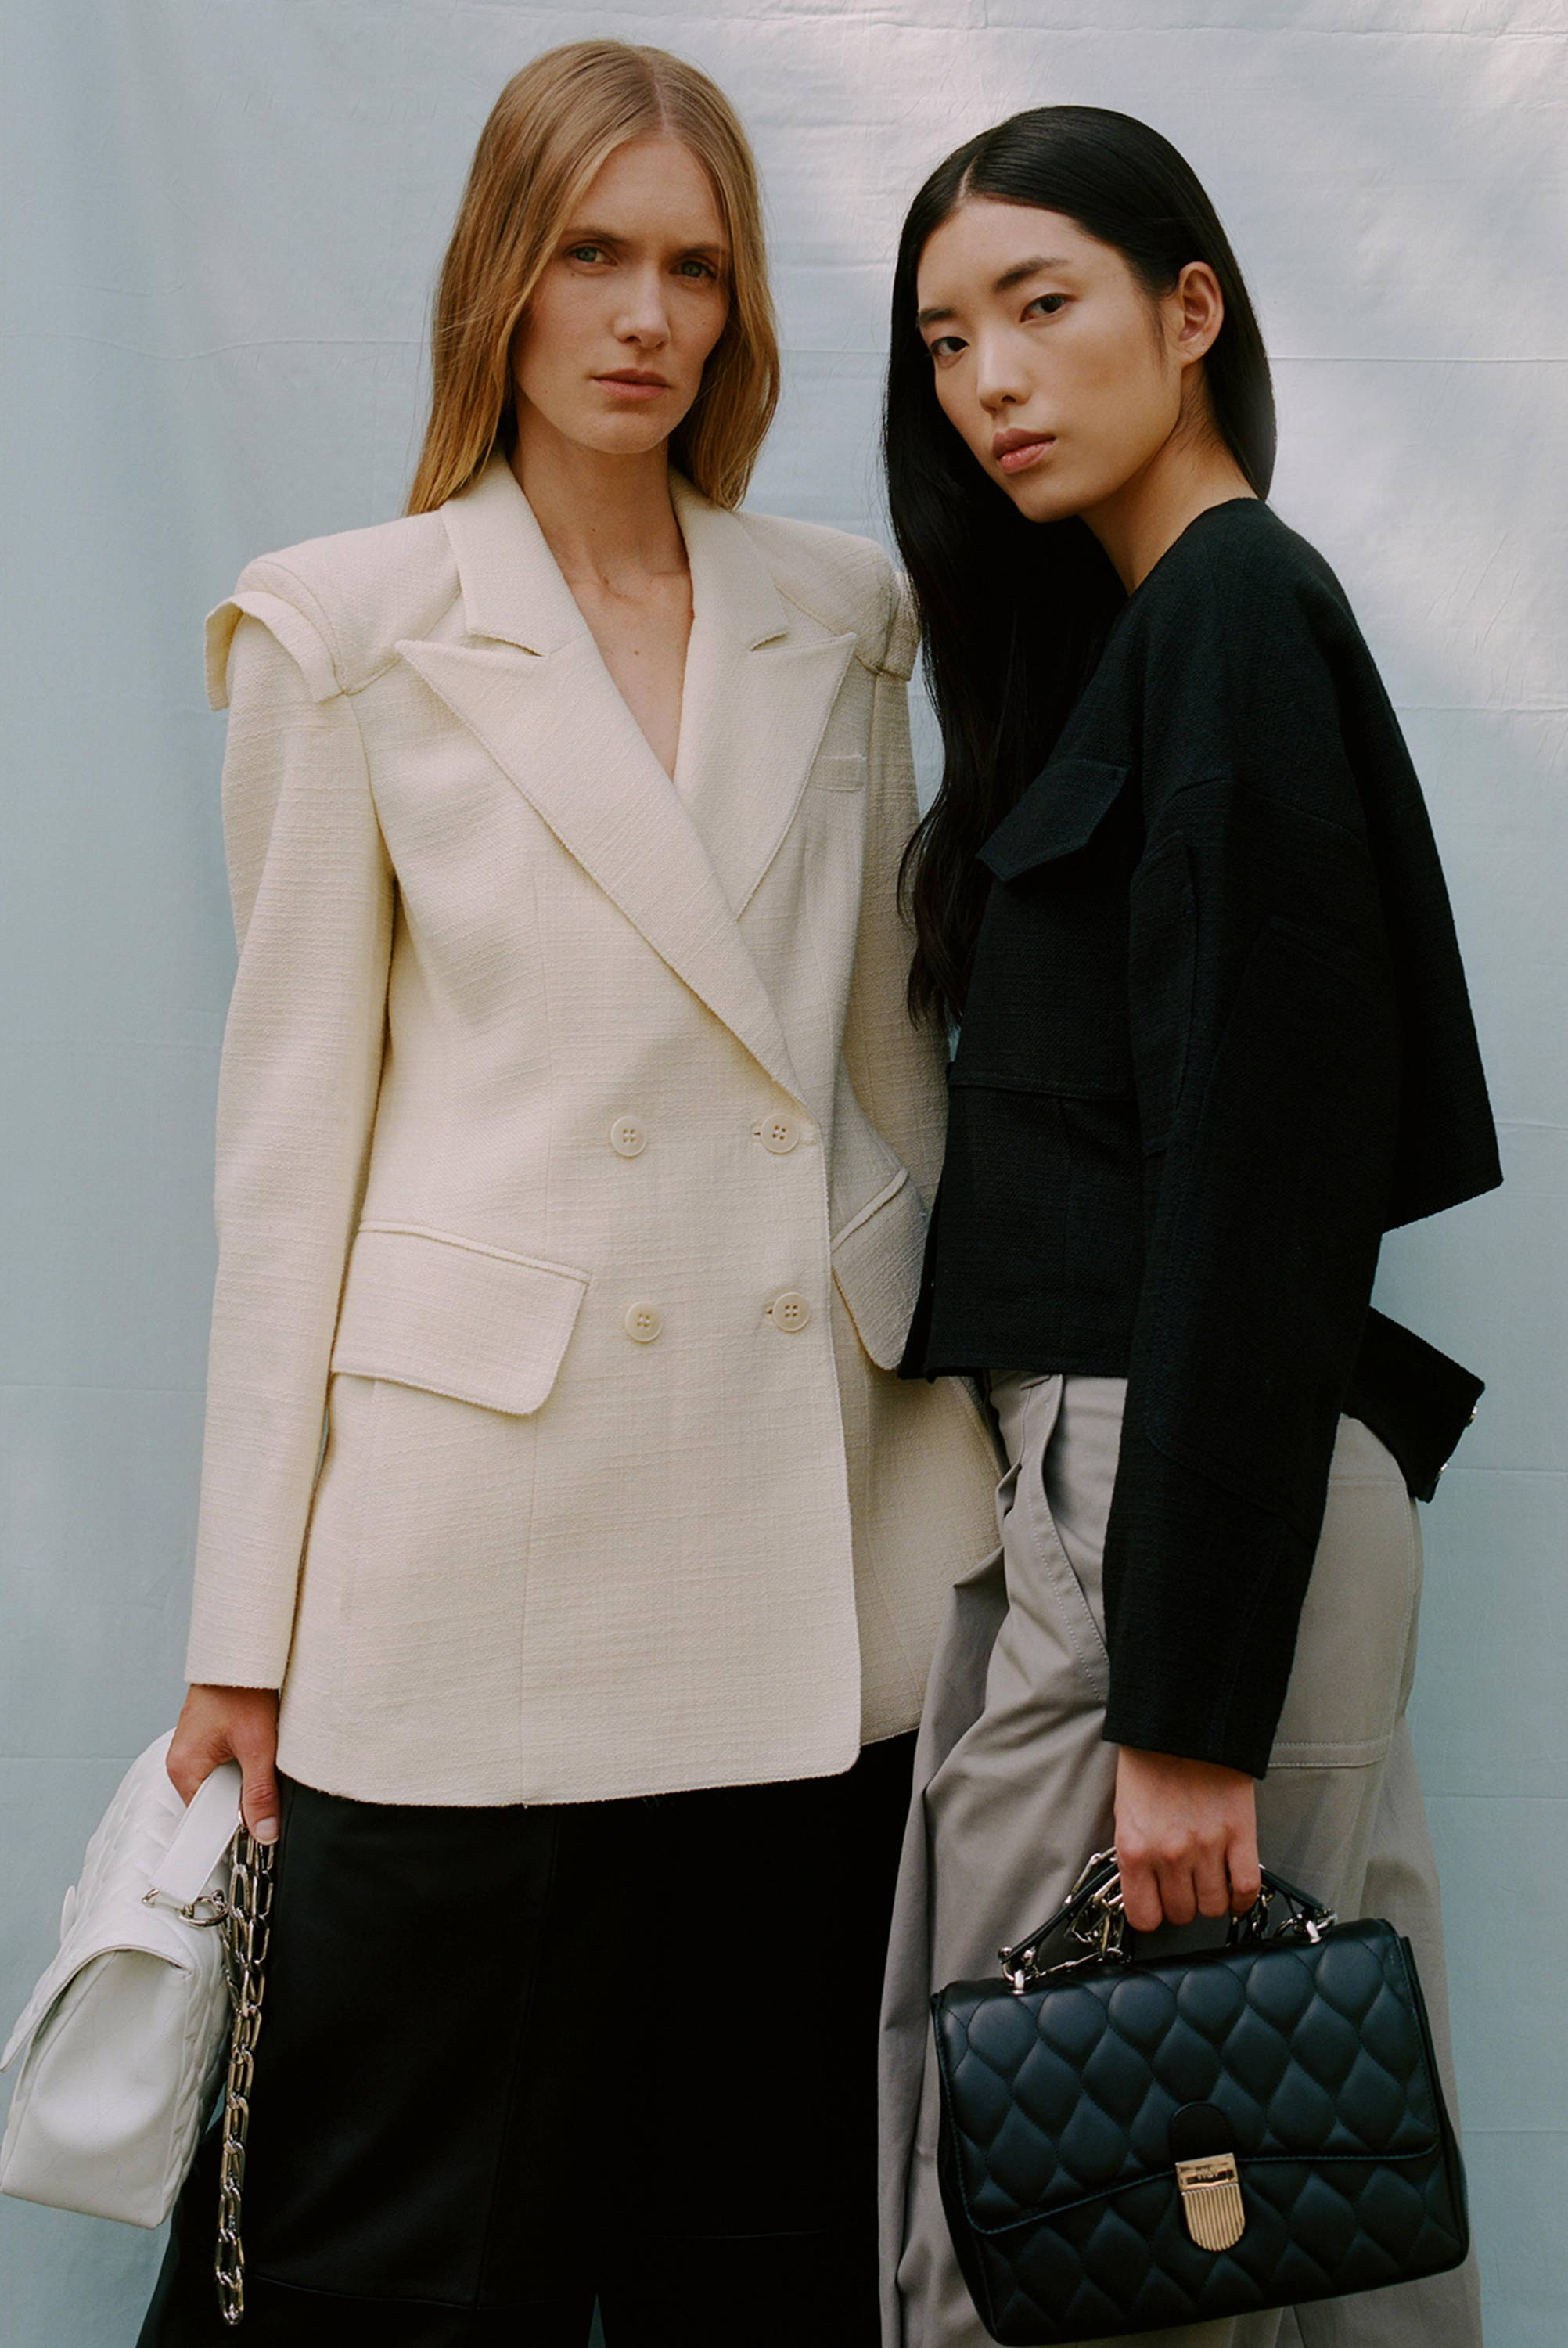 Two models wearing basketweave group. One model is wearing the white blazer. The other a black jacket.